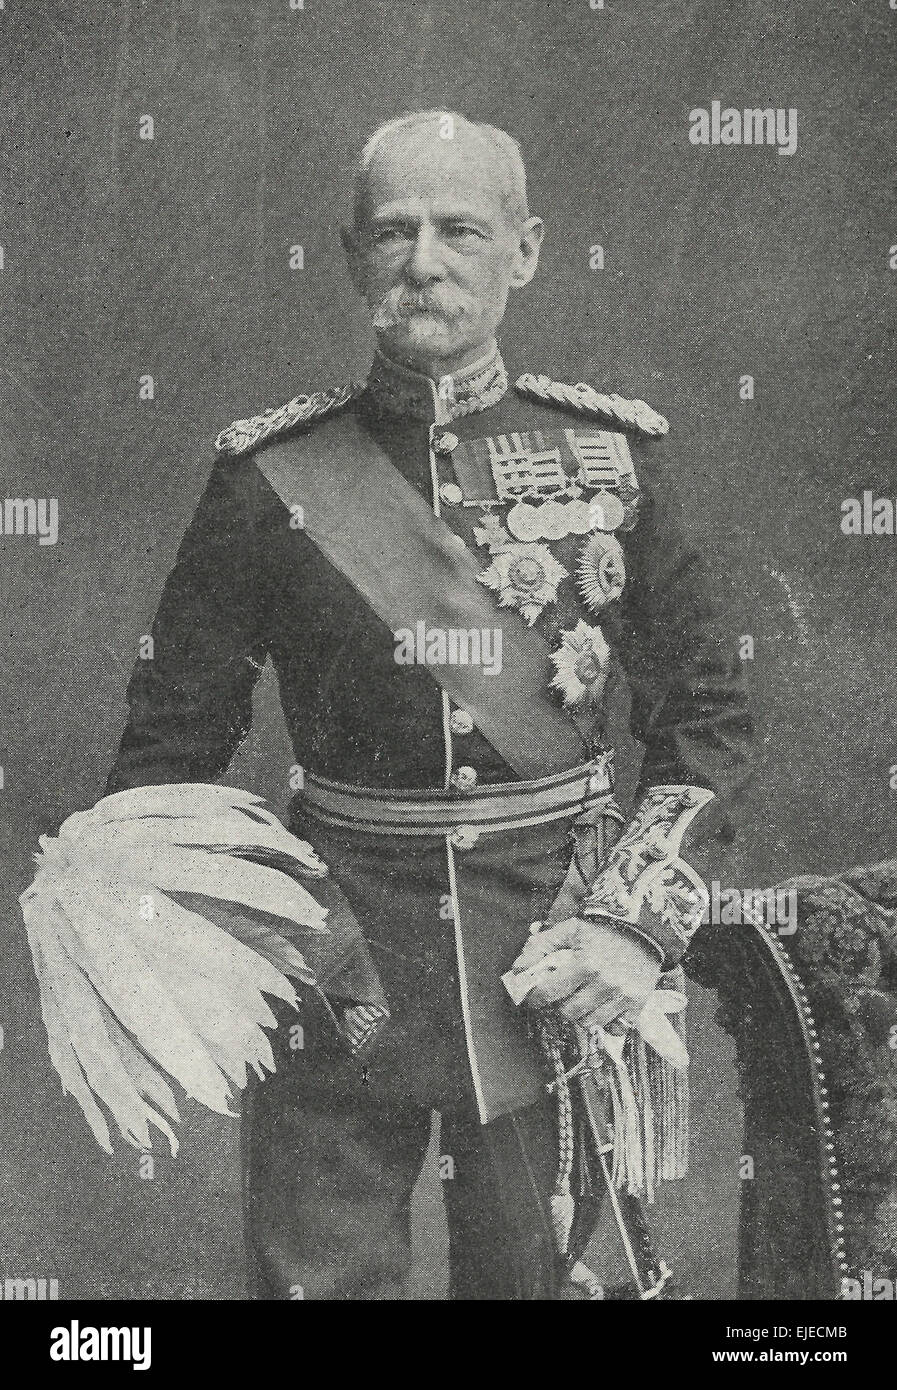 Field Marshall Lord Roberts at the time of the Second Boer War, circa 1899 - Stock Image